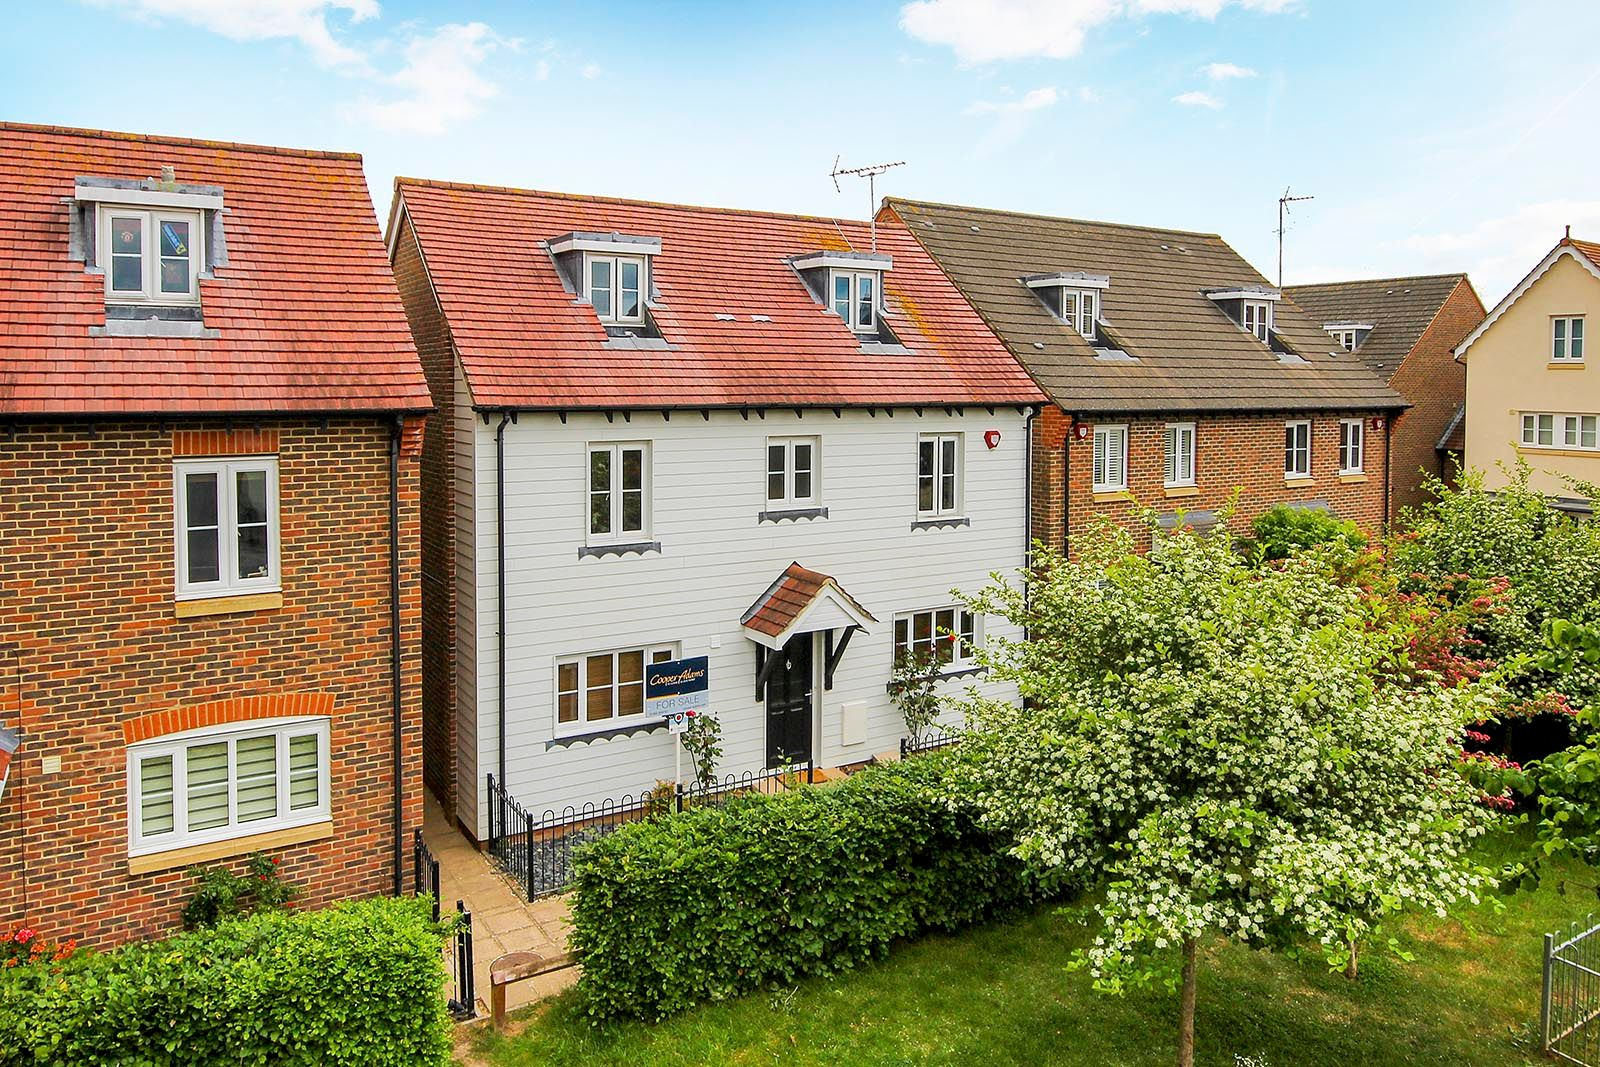 4 bed house for sale in Lucksfield Way  - Property Image 1